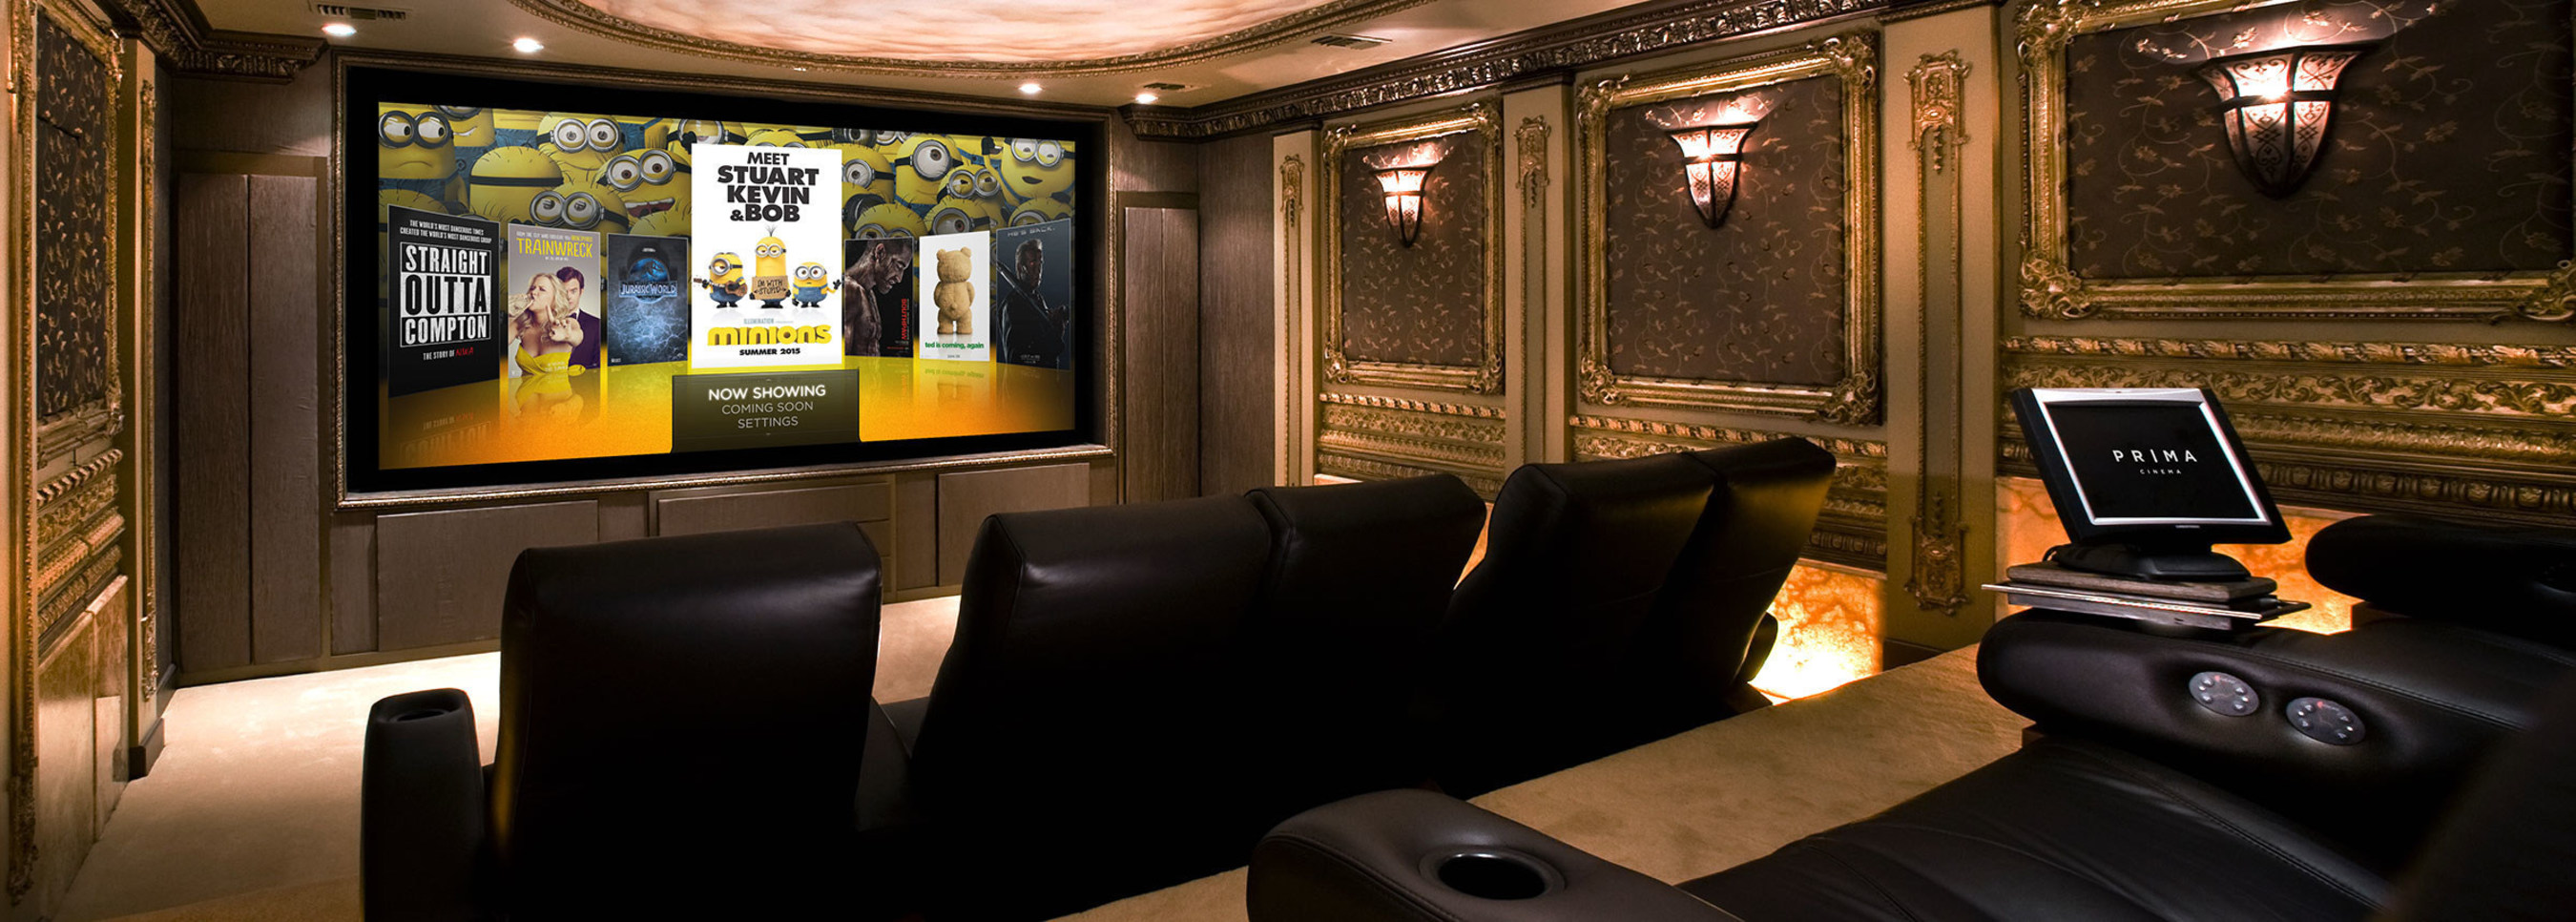 PRIMA Cinema Releases 200th Theatrical Film to Private Home Theaters